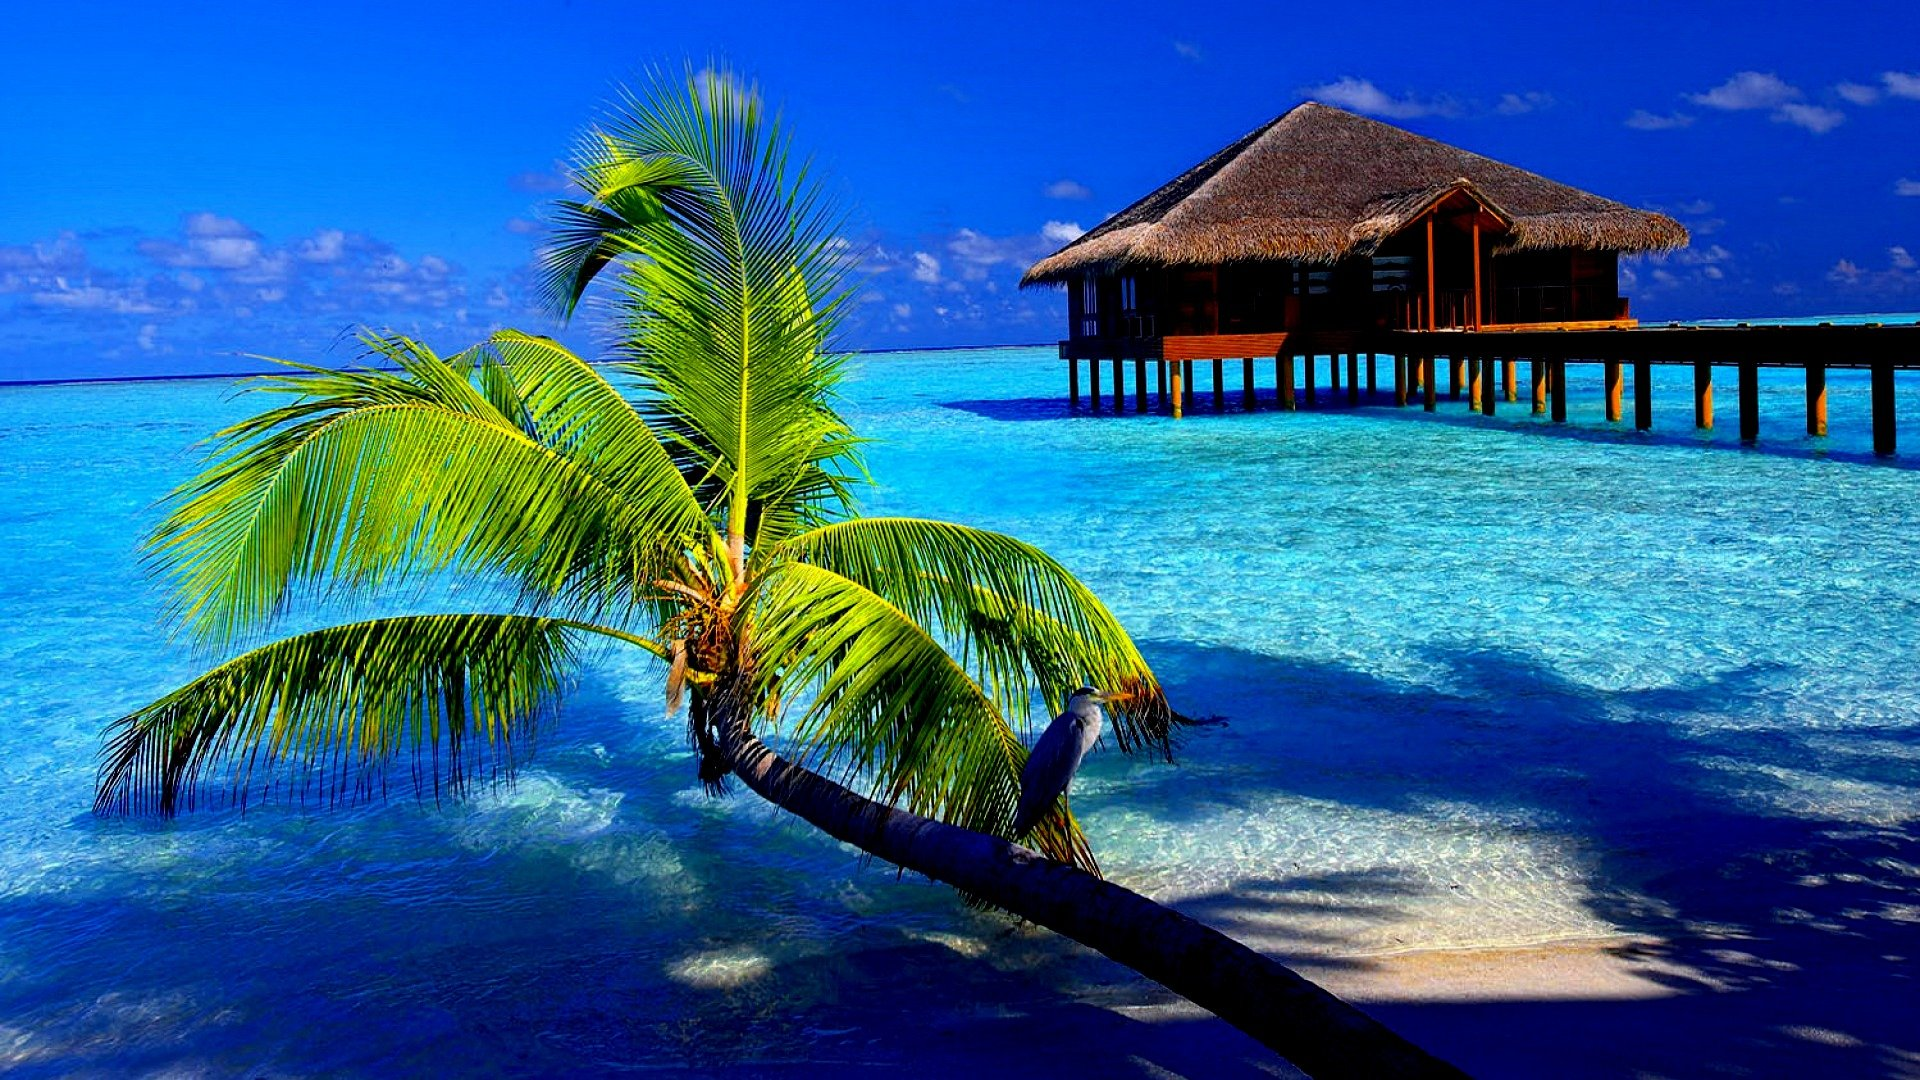 Tropical island desktop wallpaper wallpapersafari - Nature background pictures for computer ...